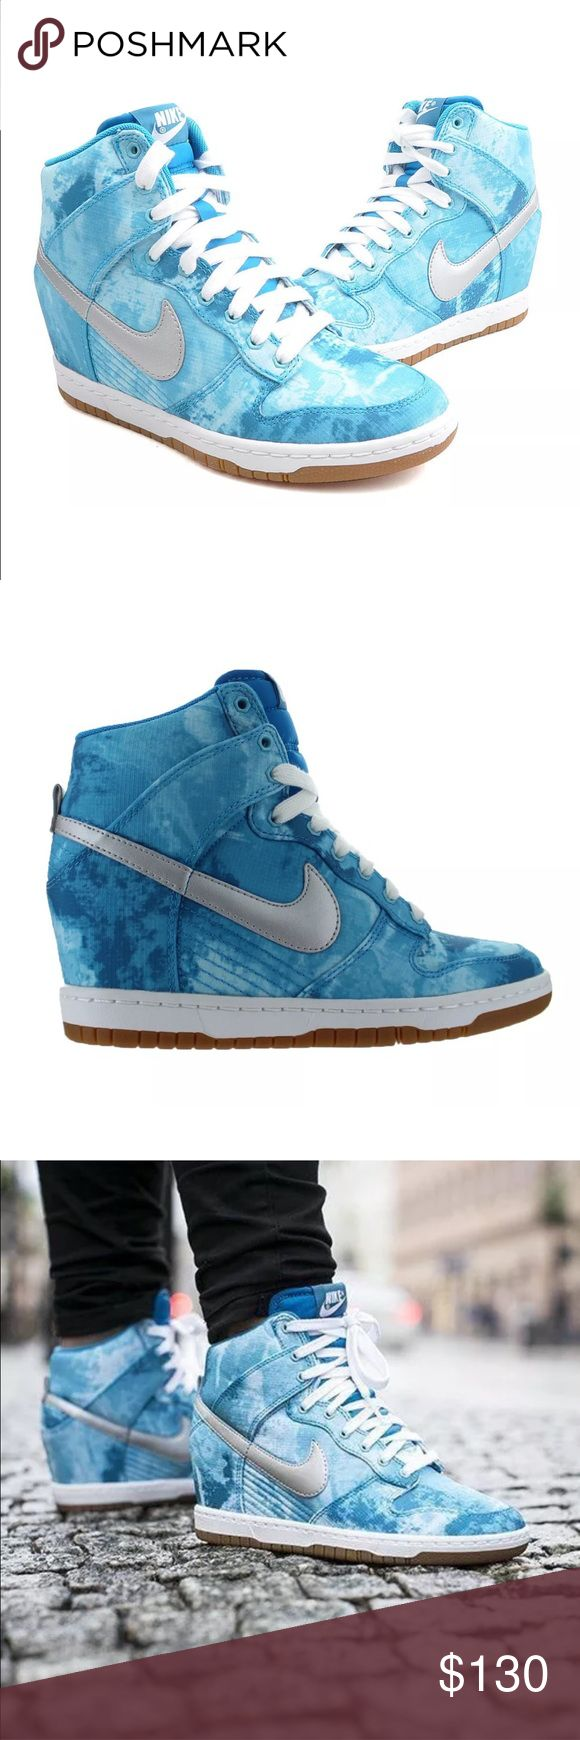 Nike Dunk Sky Hi Wedge Clearwater Silver Blue 9.5 Women's Nike Dunk Sky Hi Wedge Clearwater Silver Blue Lacquer 543258 Sz 9.5. Hidden Wedge, Hi Tops. Brand new shoes in box. Nike Shoes Sneakers